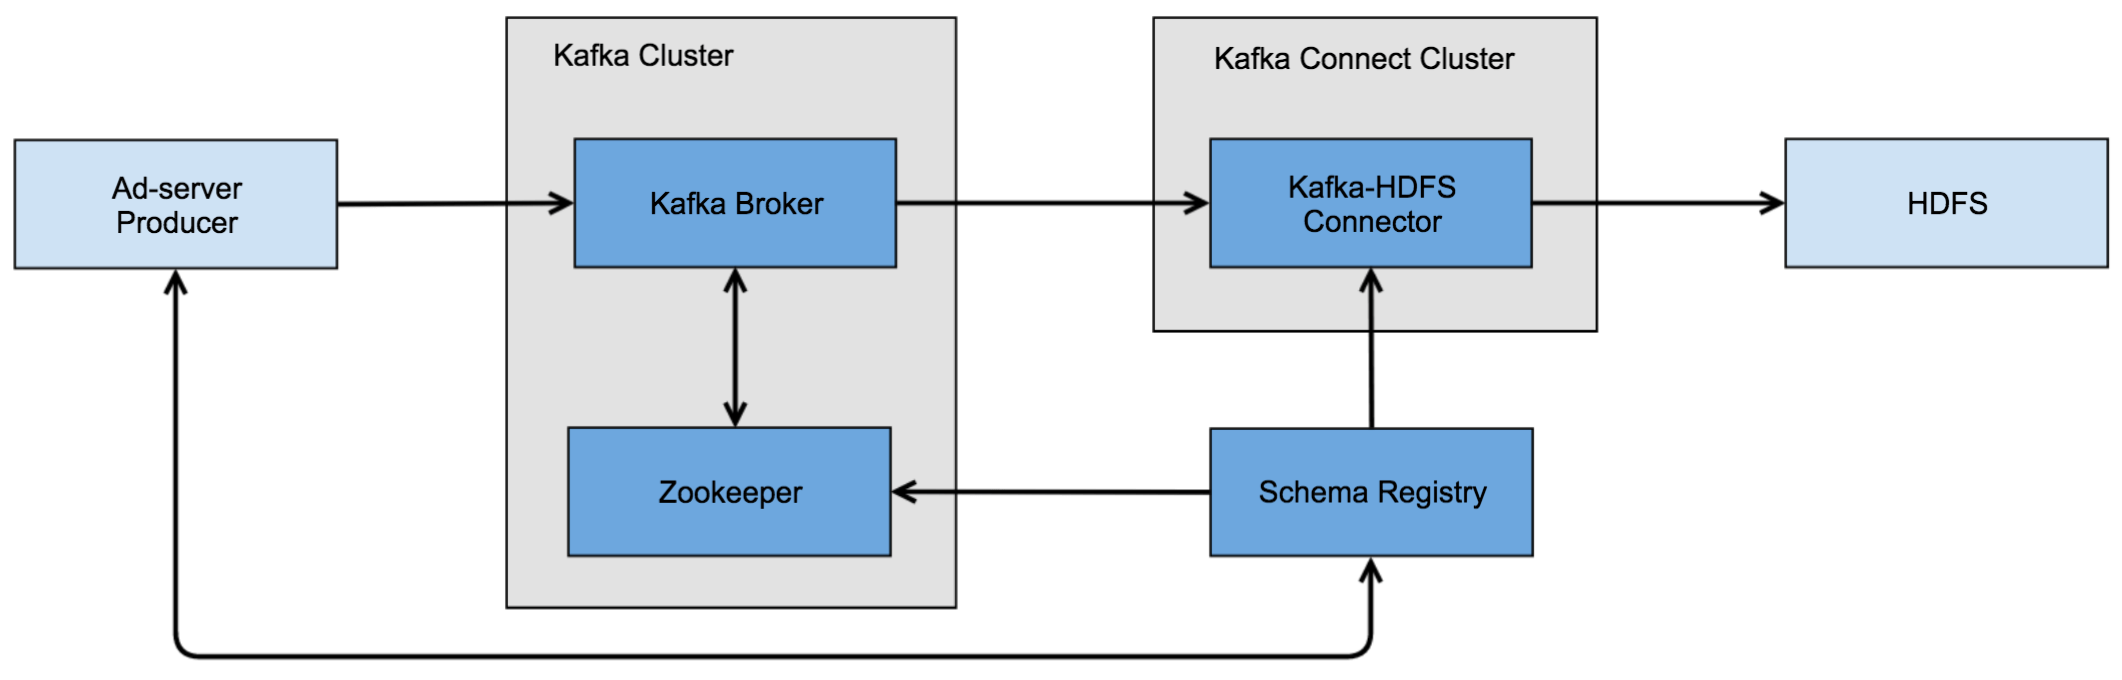 Ad-server Pipeline Components